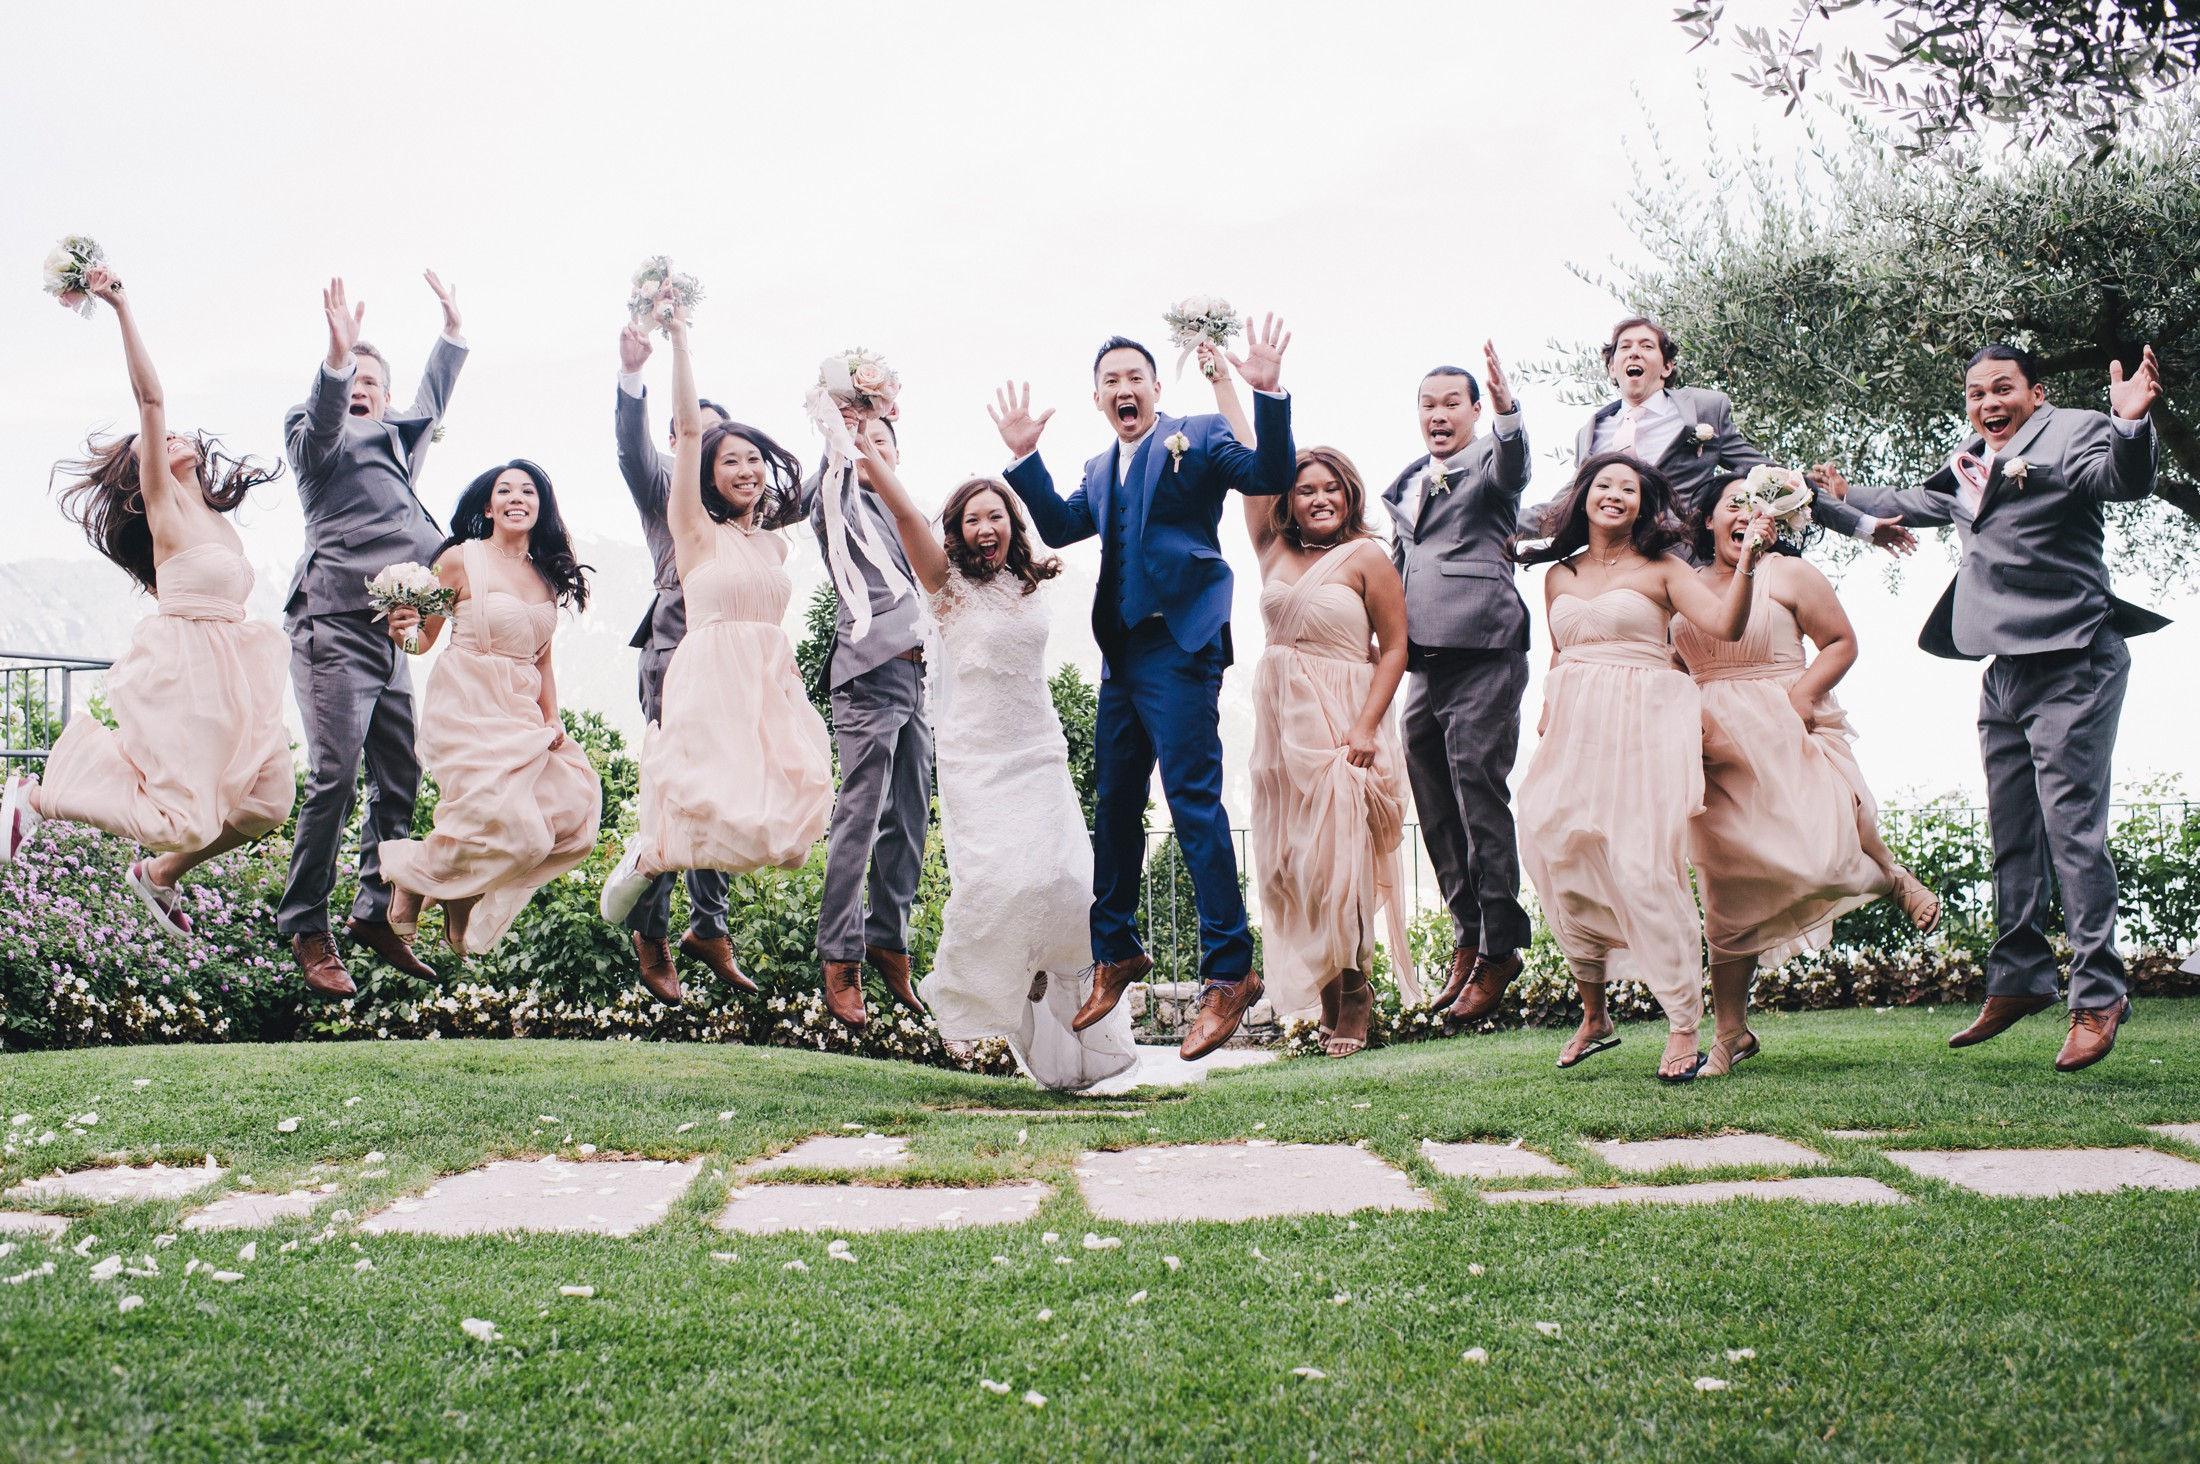 bride and groom jumping together with all they best men and bridesmaids